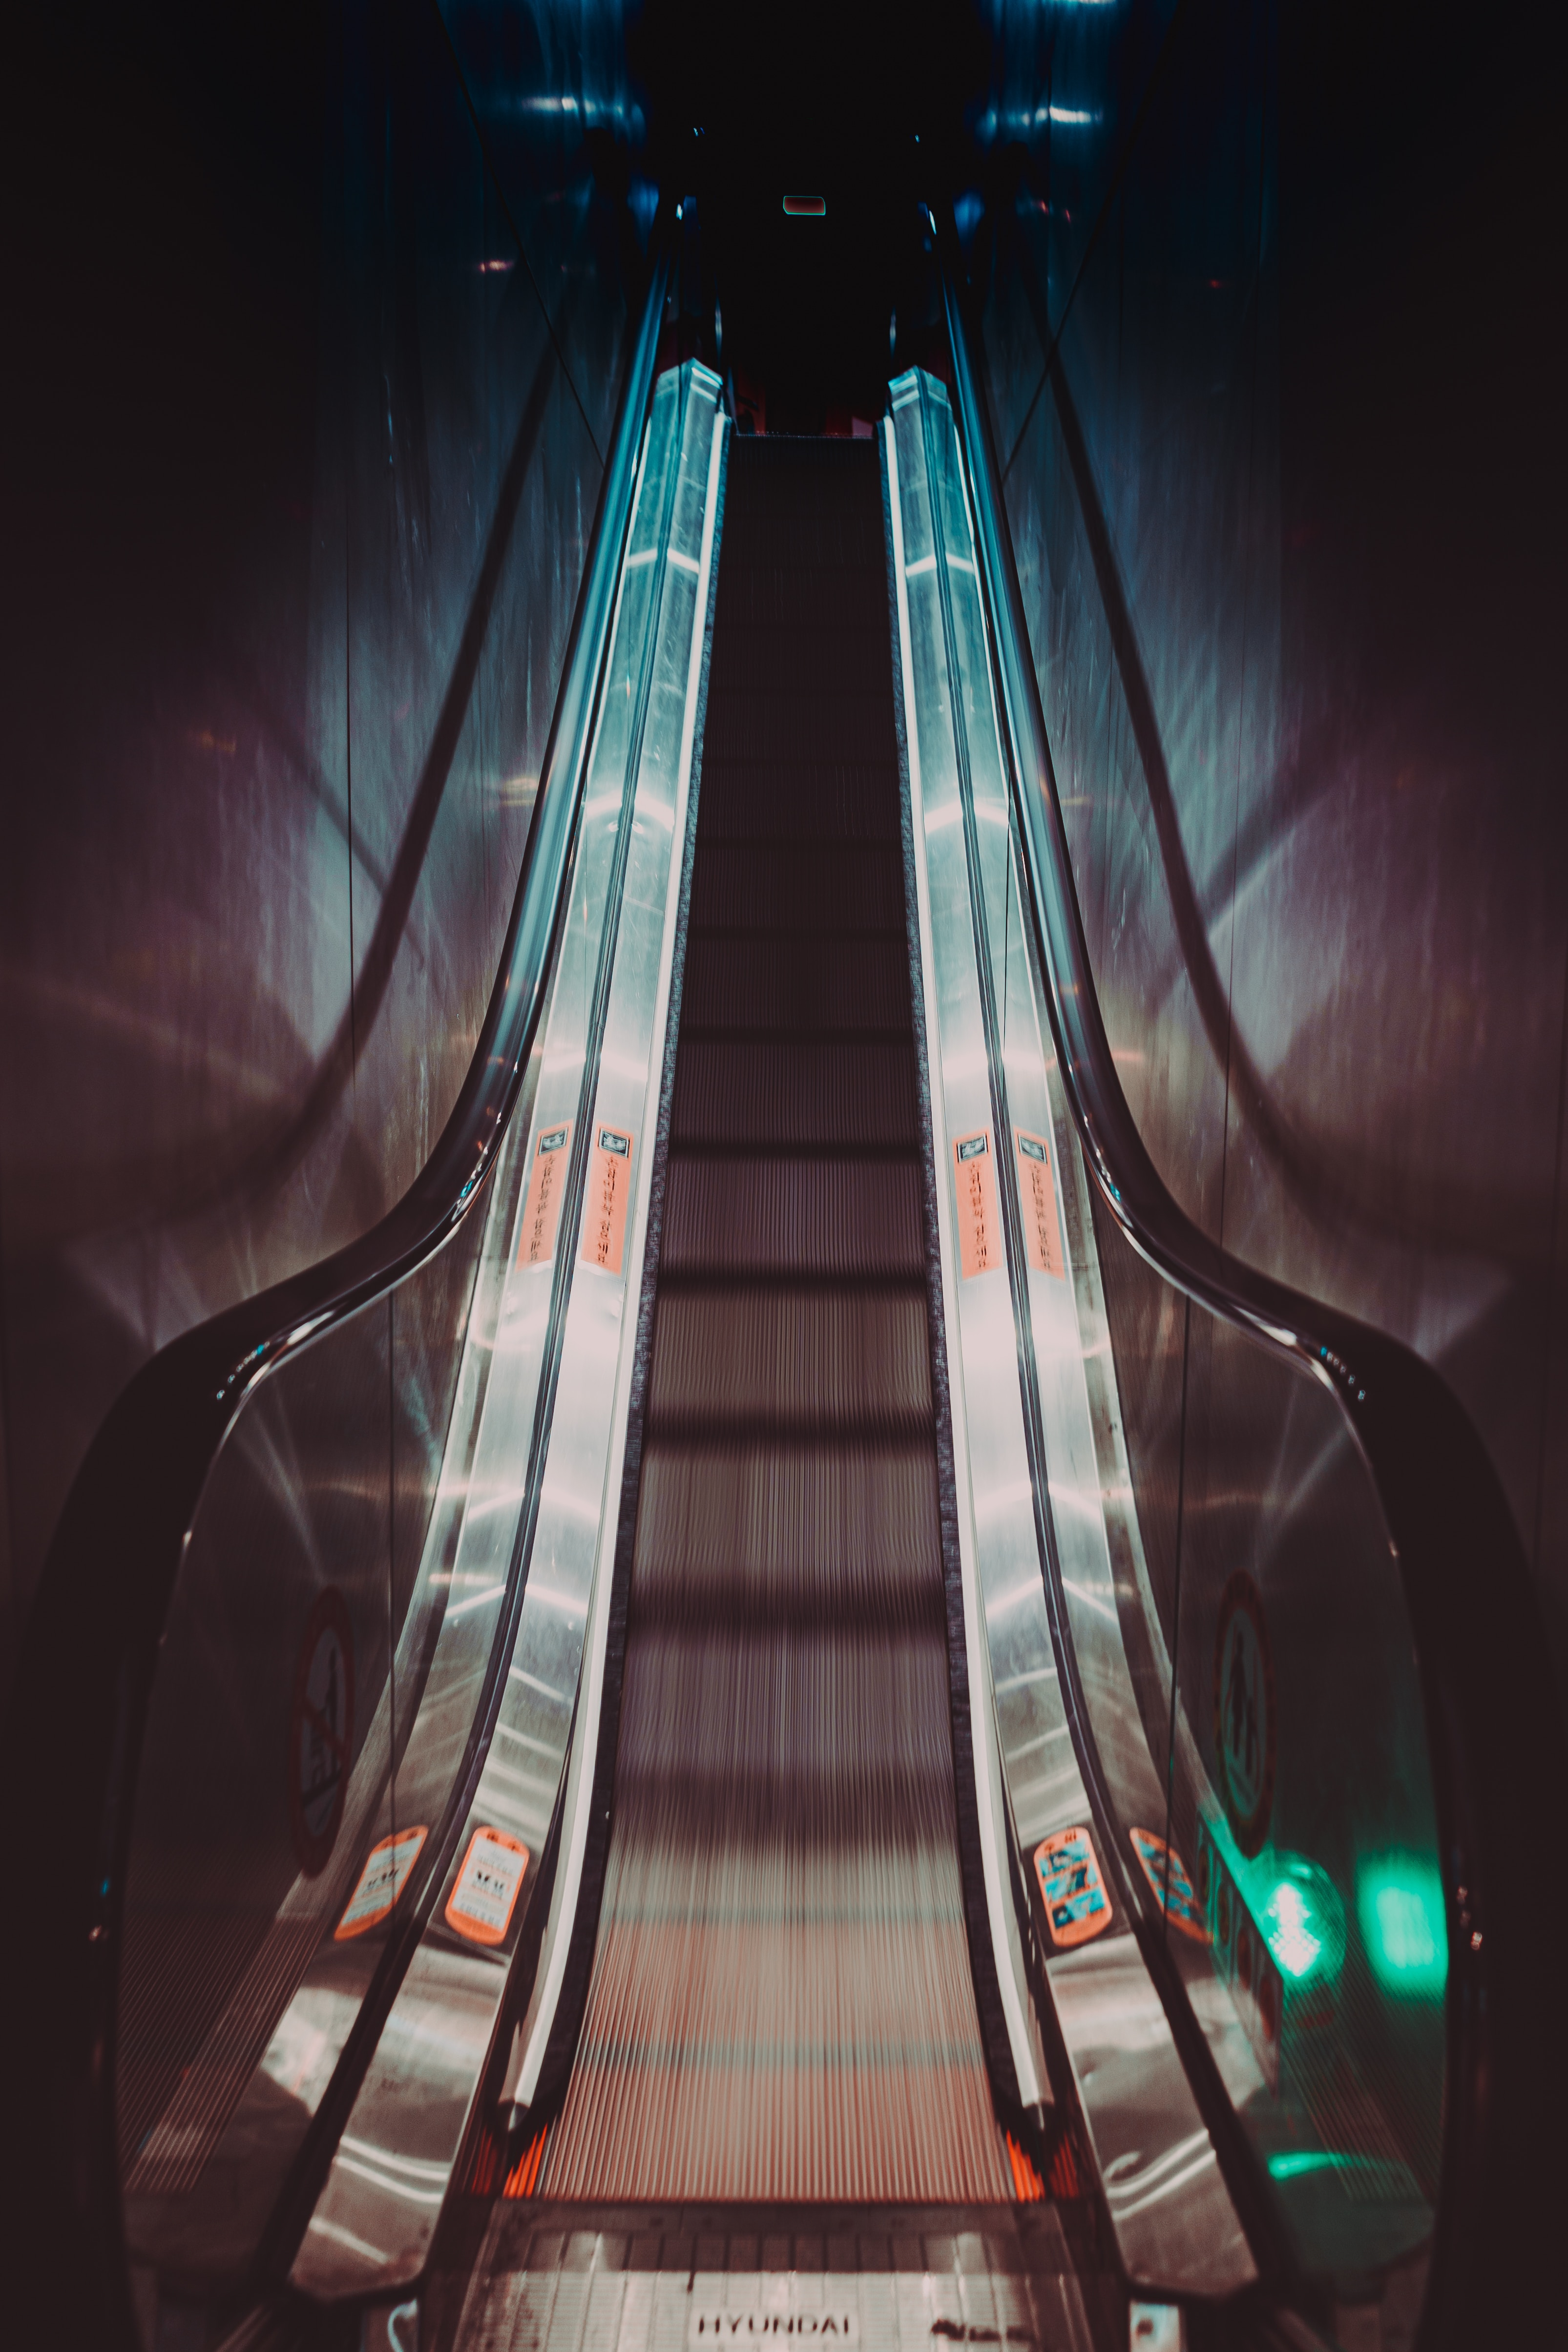 63853 Screensavers and Wallpapers Metro for phone. Download Shine, Light, Miscellanea, Miscellaneous, Backlight, Illumination, Tunnel, Metro, Subway, Escalator pictures for free